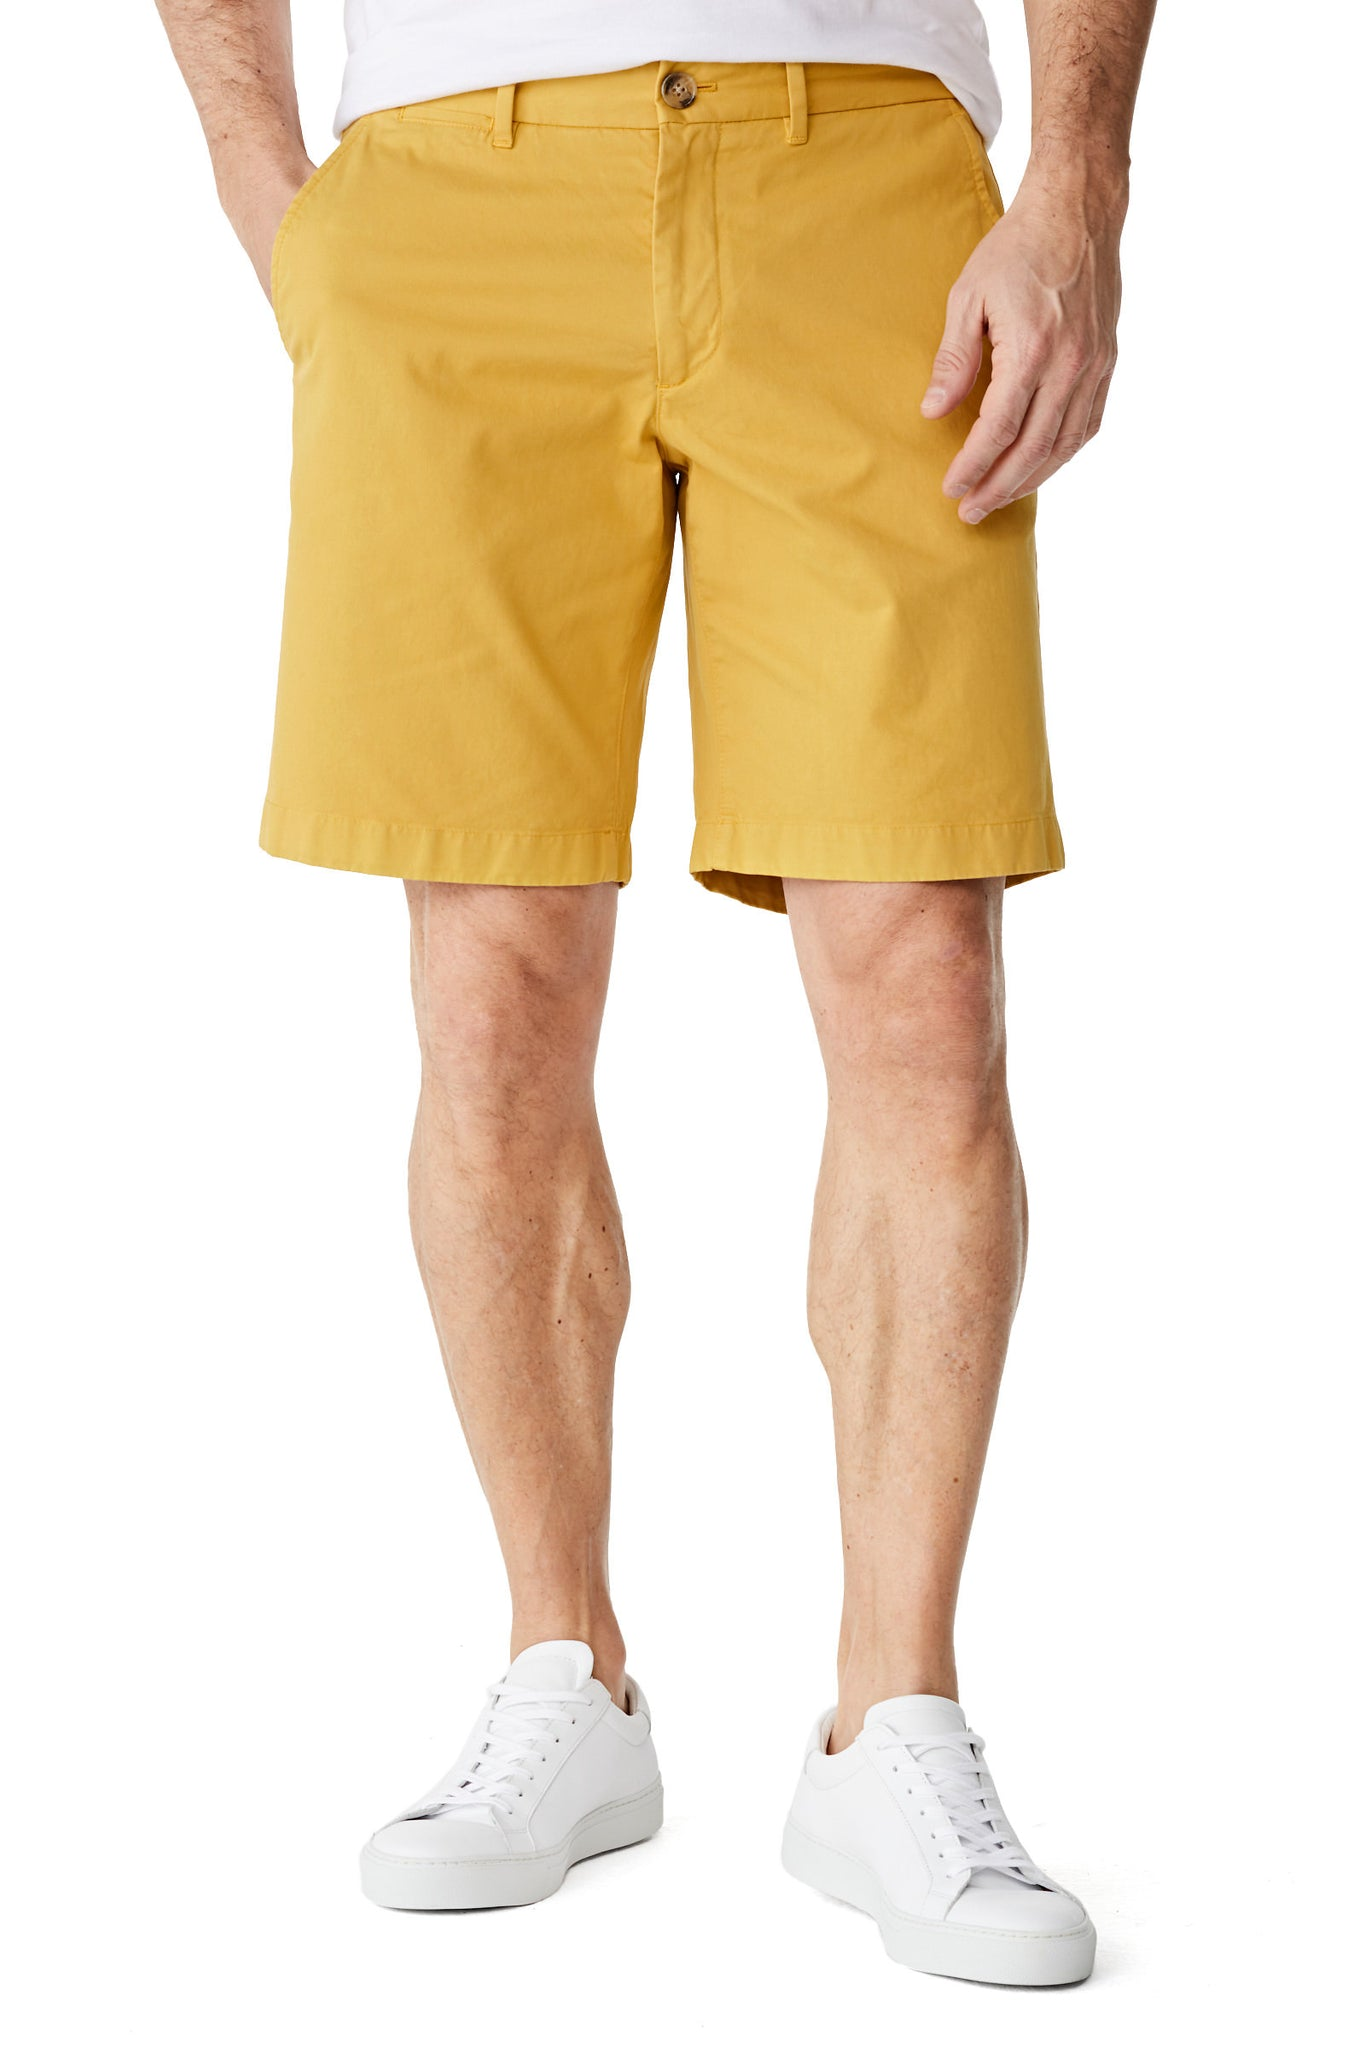 McG Regular fit chino shorts